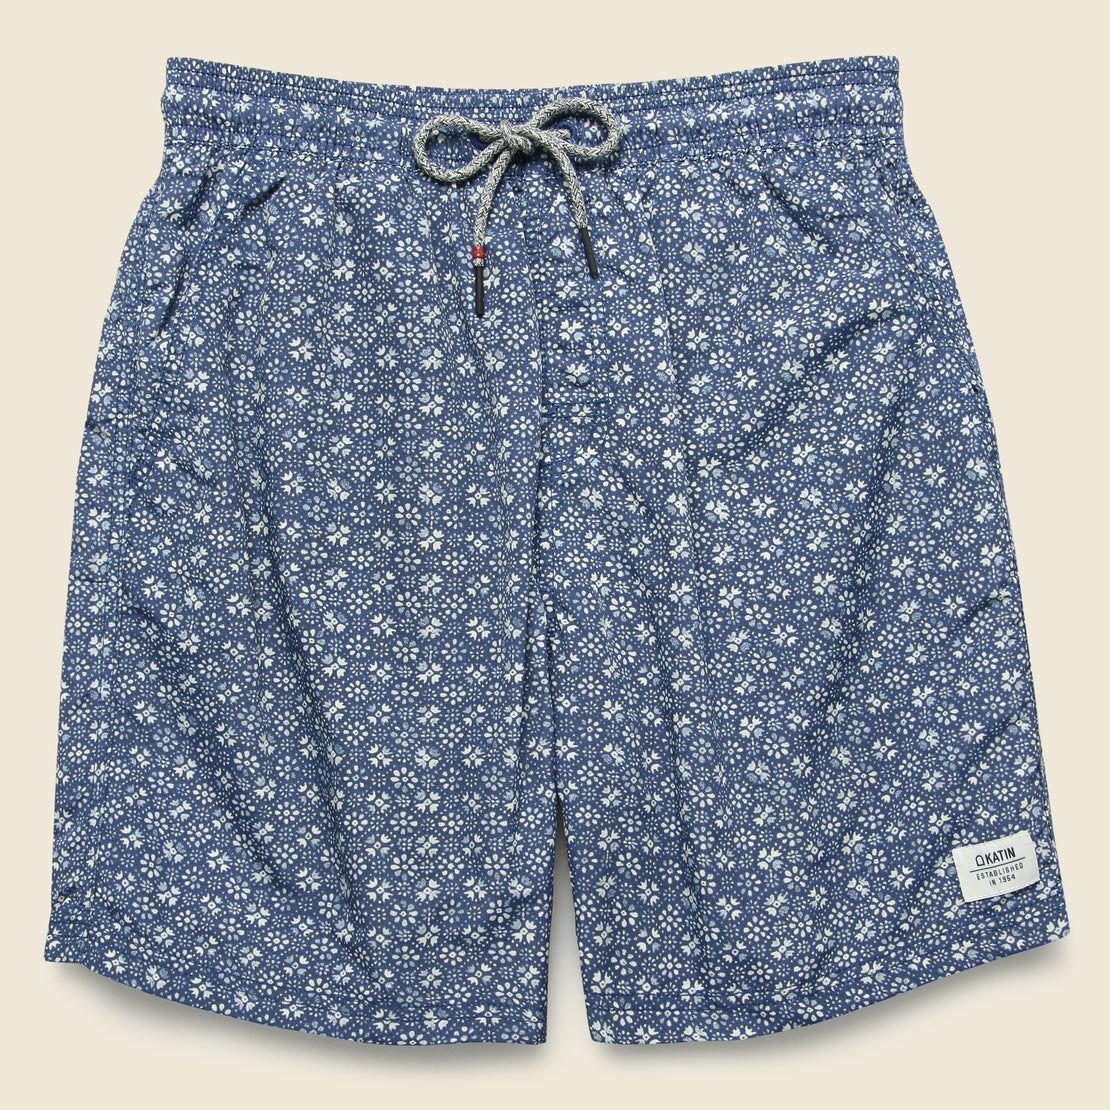 Katin Walter Swim Trunk - New Navy